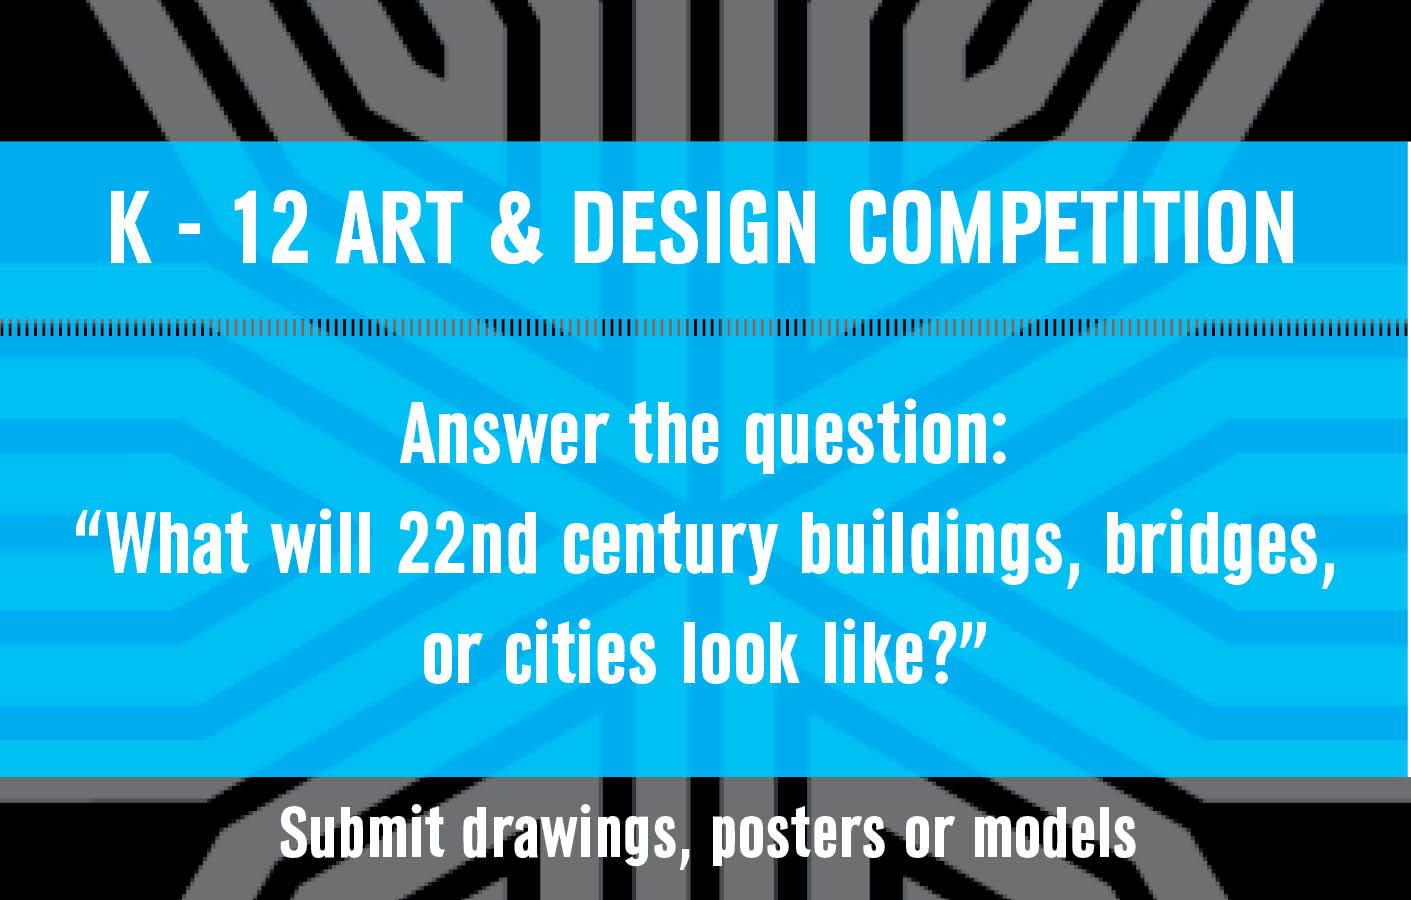 K-12 Art & Design Competition